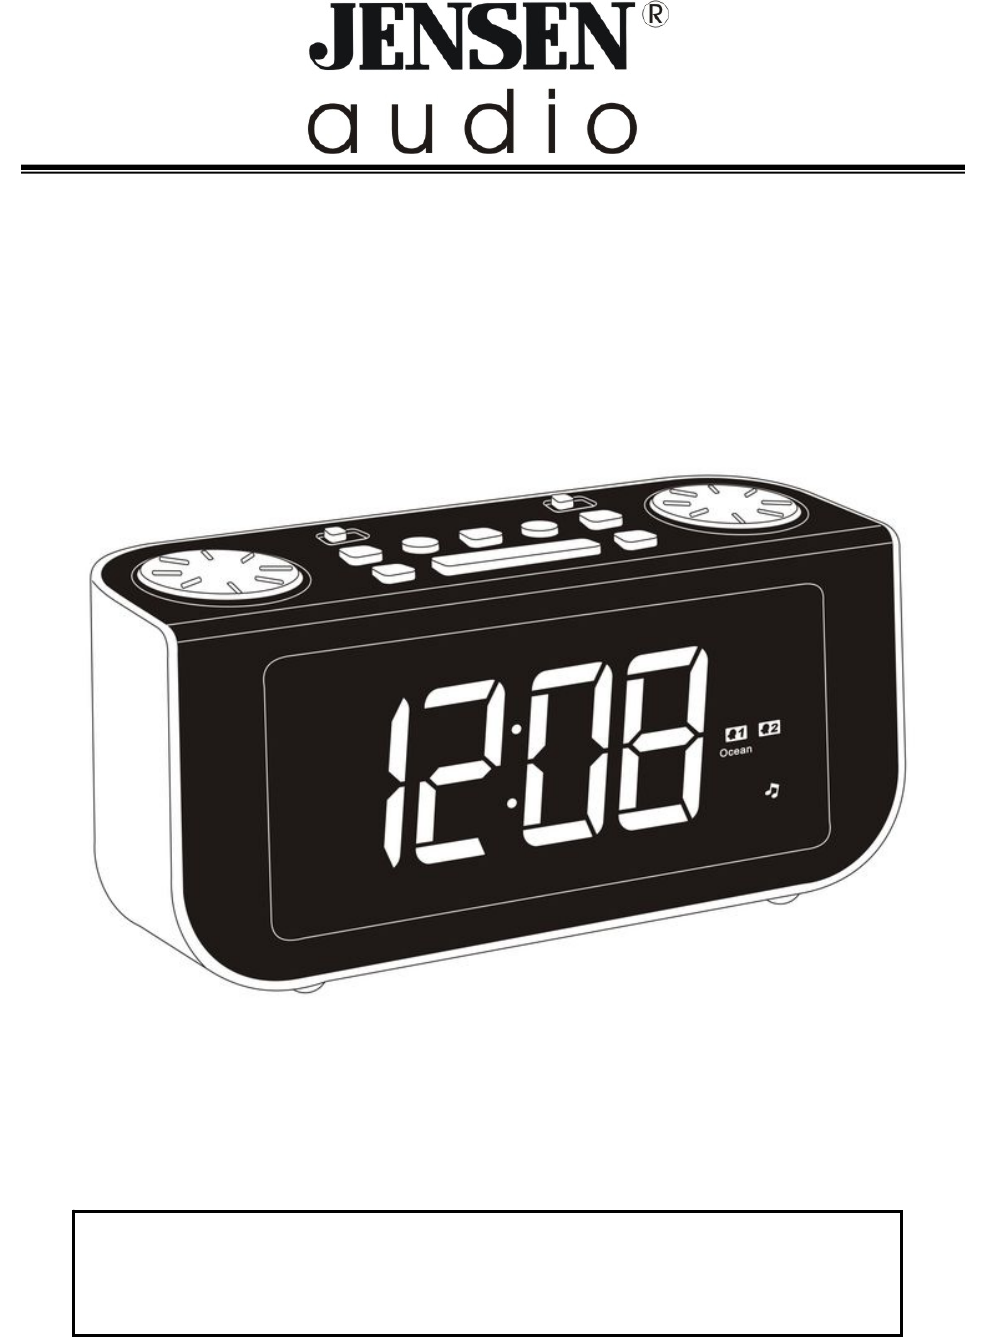 jensen clock radio jcr 300 user guide. Black Bedroom Furniture Sets. Home Design Ideas